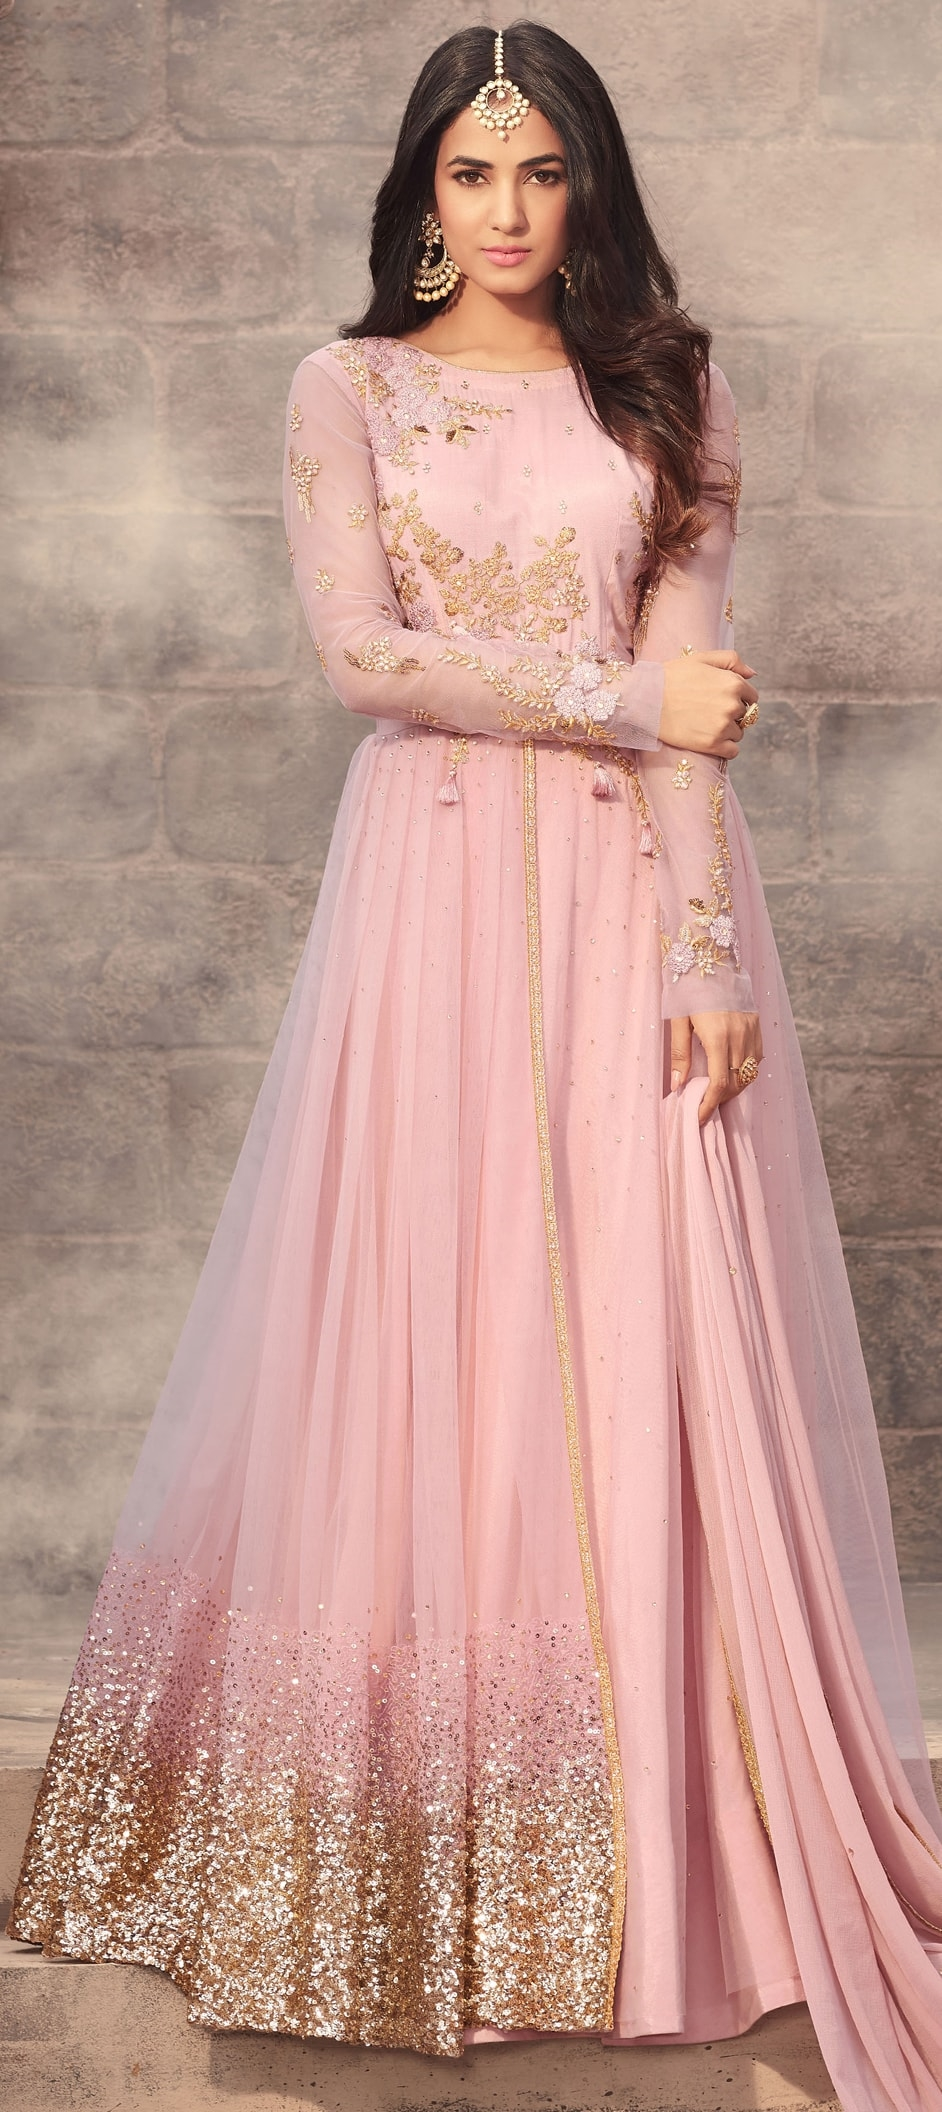 906450: Pink and Majenta color family stitched Party Wear Salwar ...